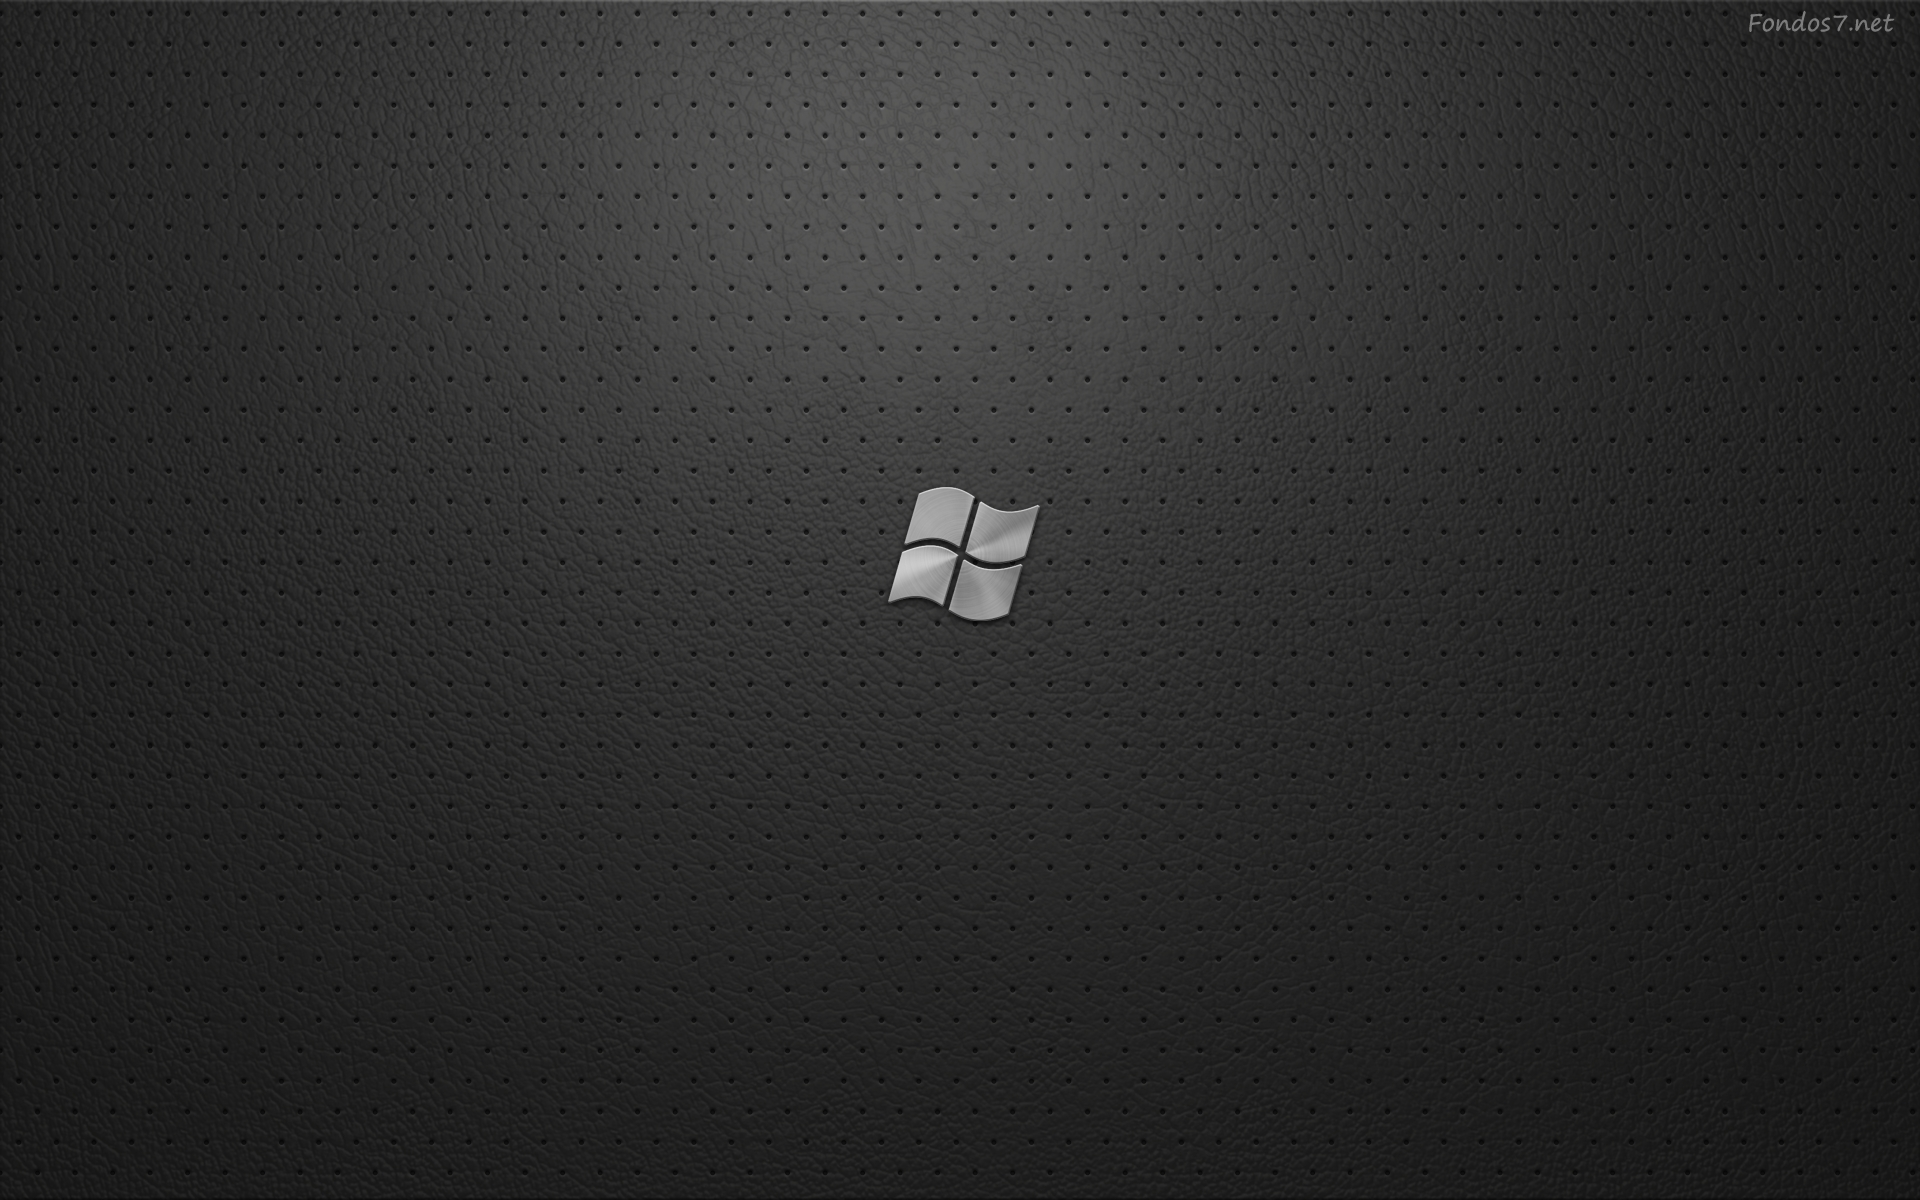 Free Download Descargar Fondos De Pantalla Windows Seven Black Hd